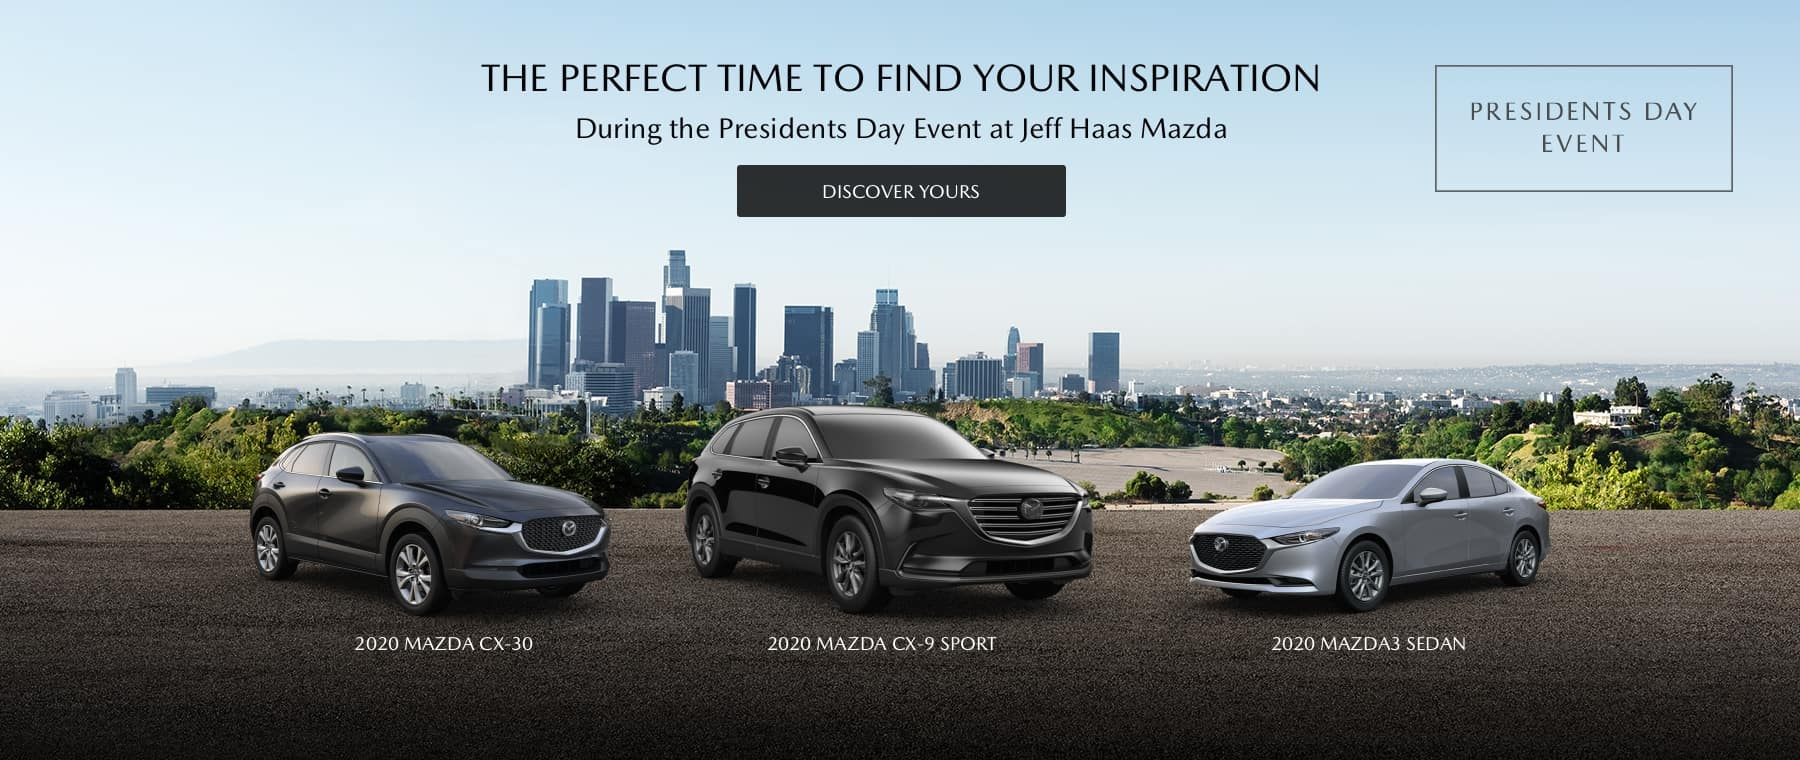 Presidents Day Sales Event at Jeff Haas Mazda in Houston TX